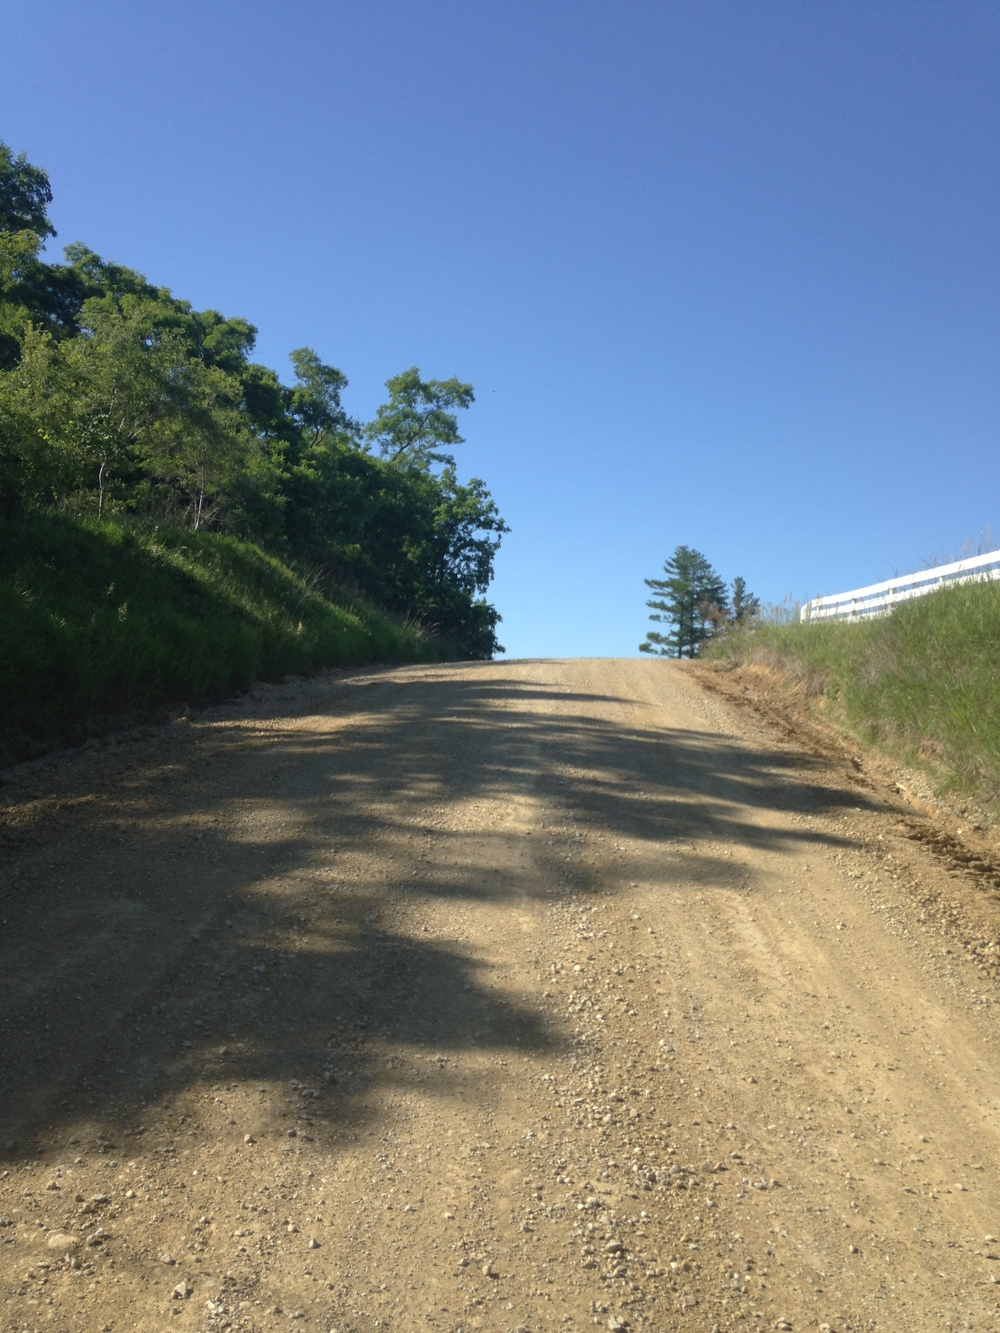 The-Top-of-the-Gravel-Road.jpg